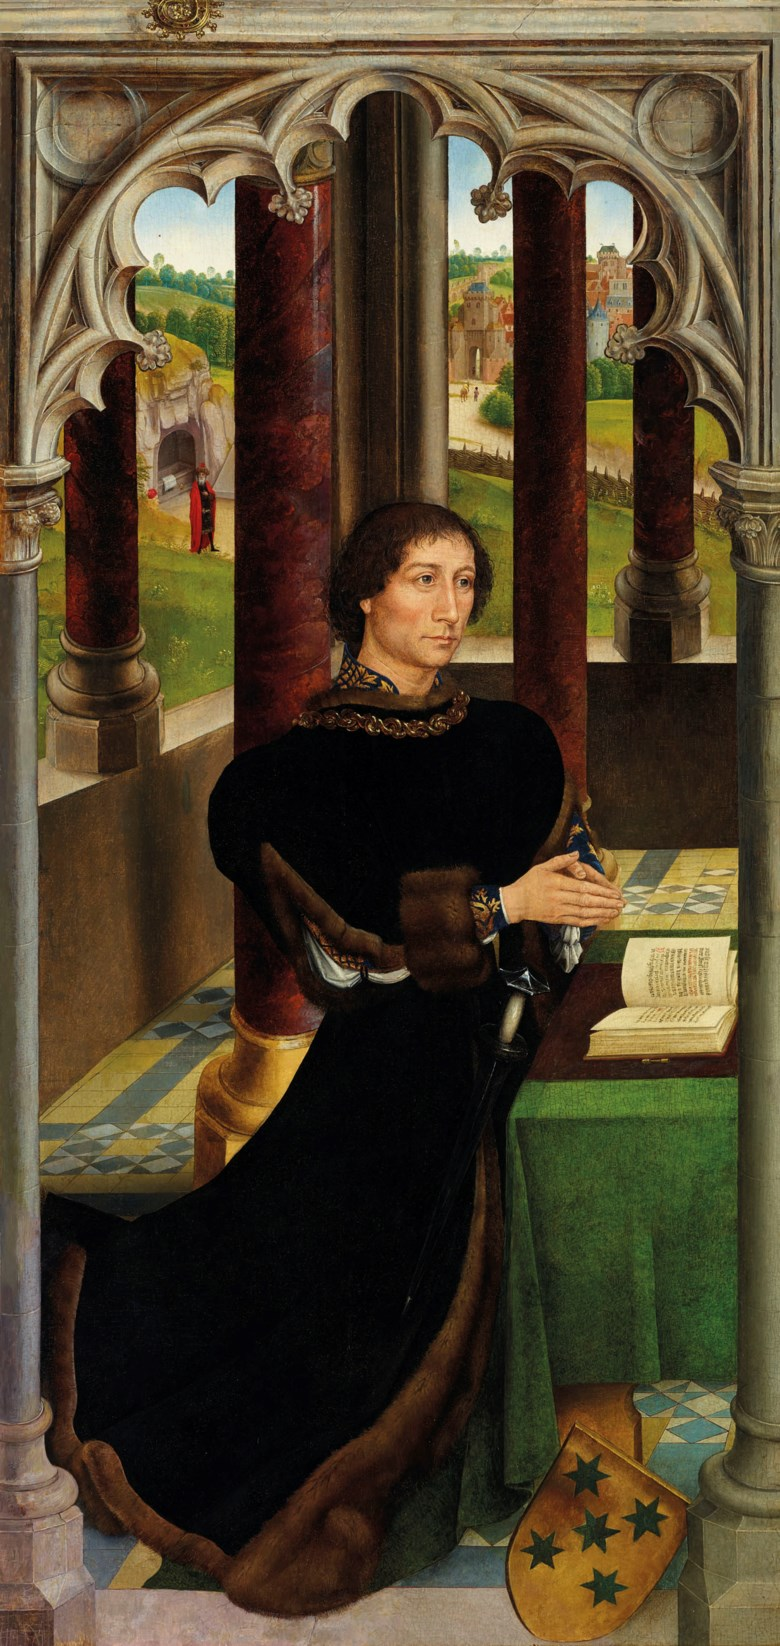 Hans Memling  (near Frankfurt 143040-1494 Bruges), The wing of a triptych Portrait of a member of the De Rojas family, kneeling, full-length. Oil on panel, marouflaged. 41⅝ x 19⅞  in (105.5 x 50.5  cm). Estimate £1,500,000-2,500,000. Offered in Old Masters Evening Sale on 4 July 2019 at Christie's in London